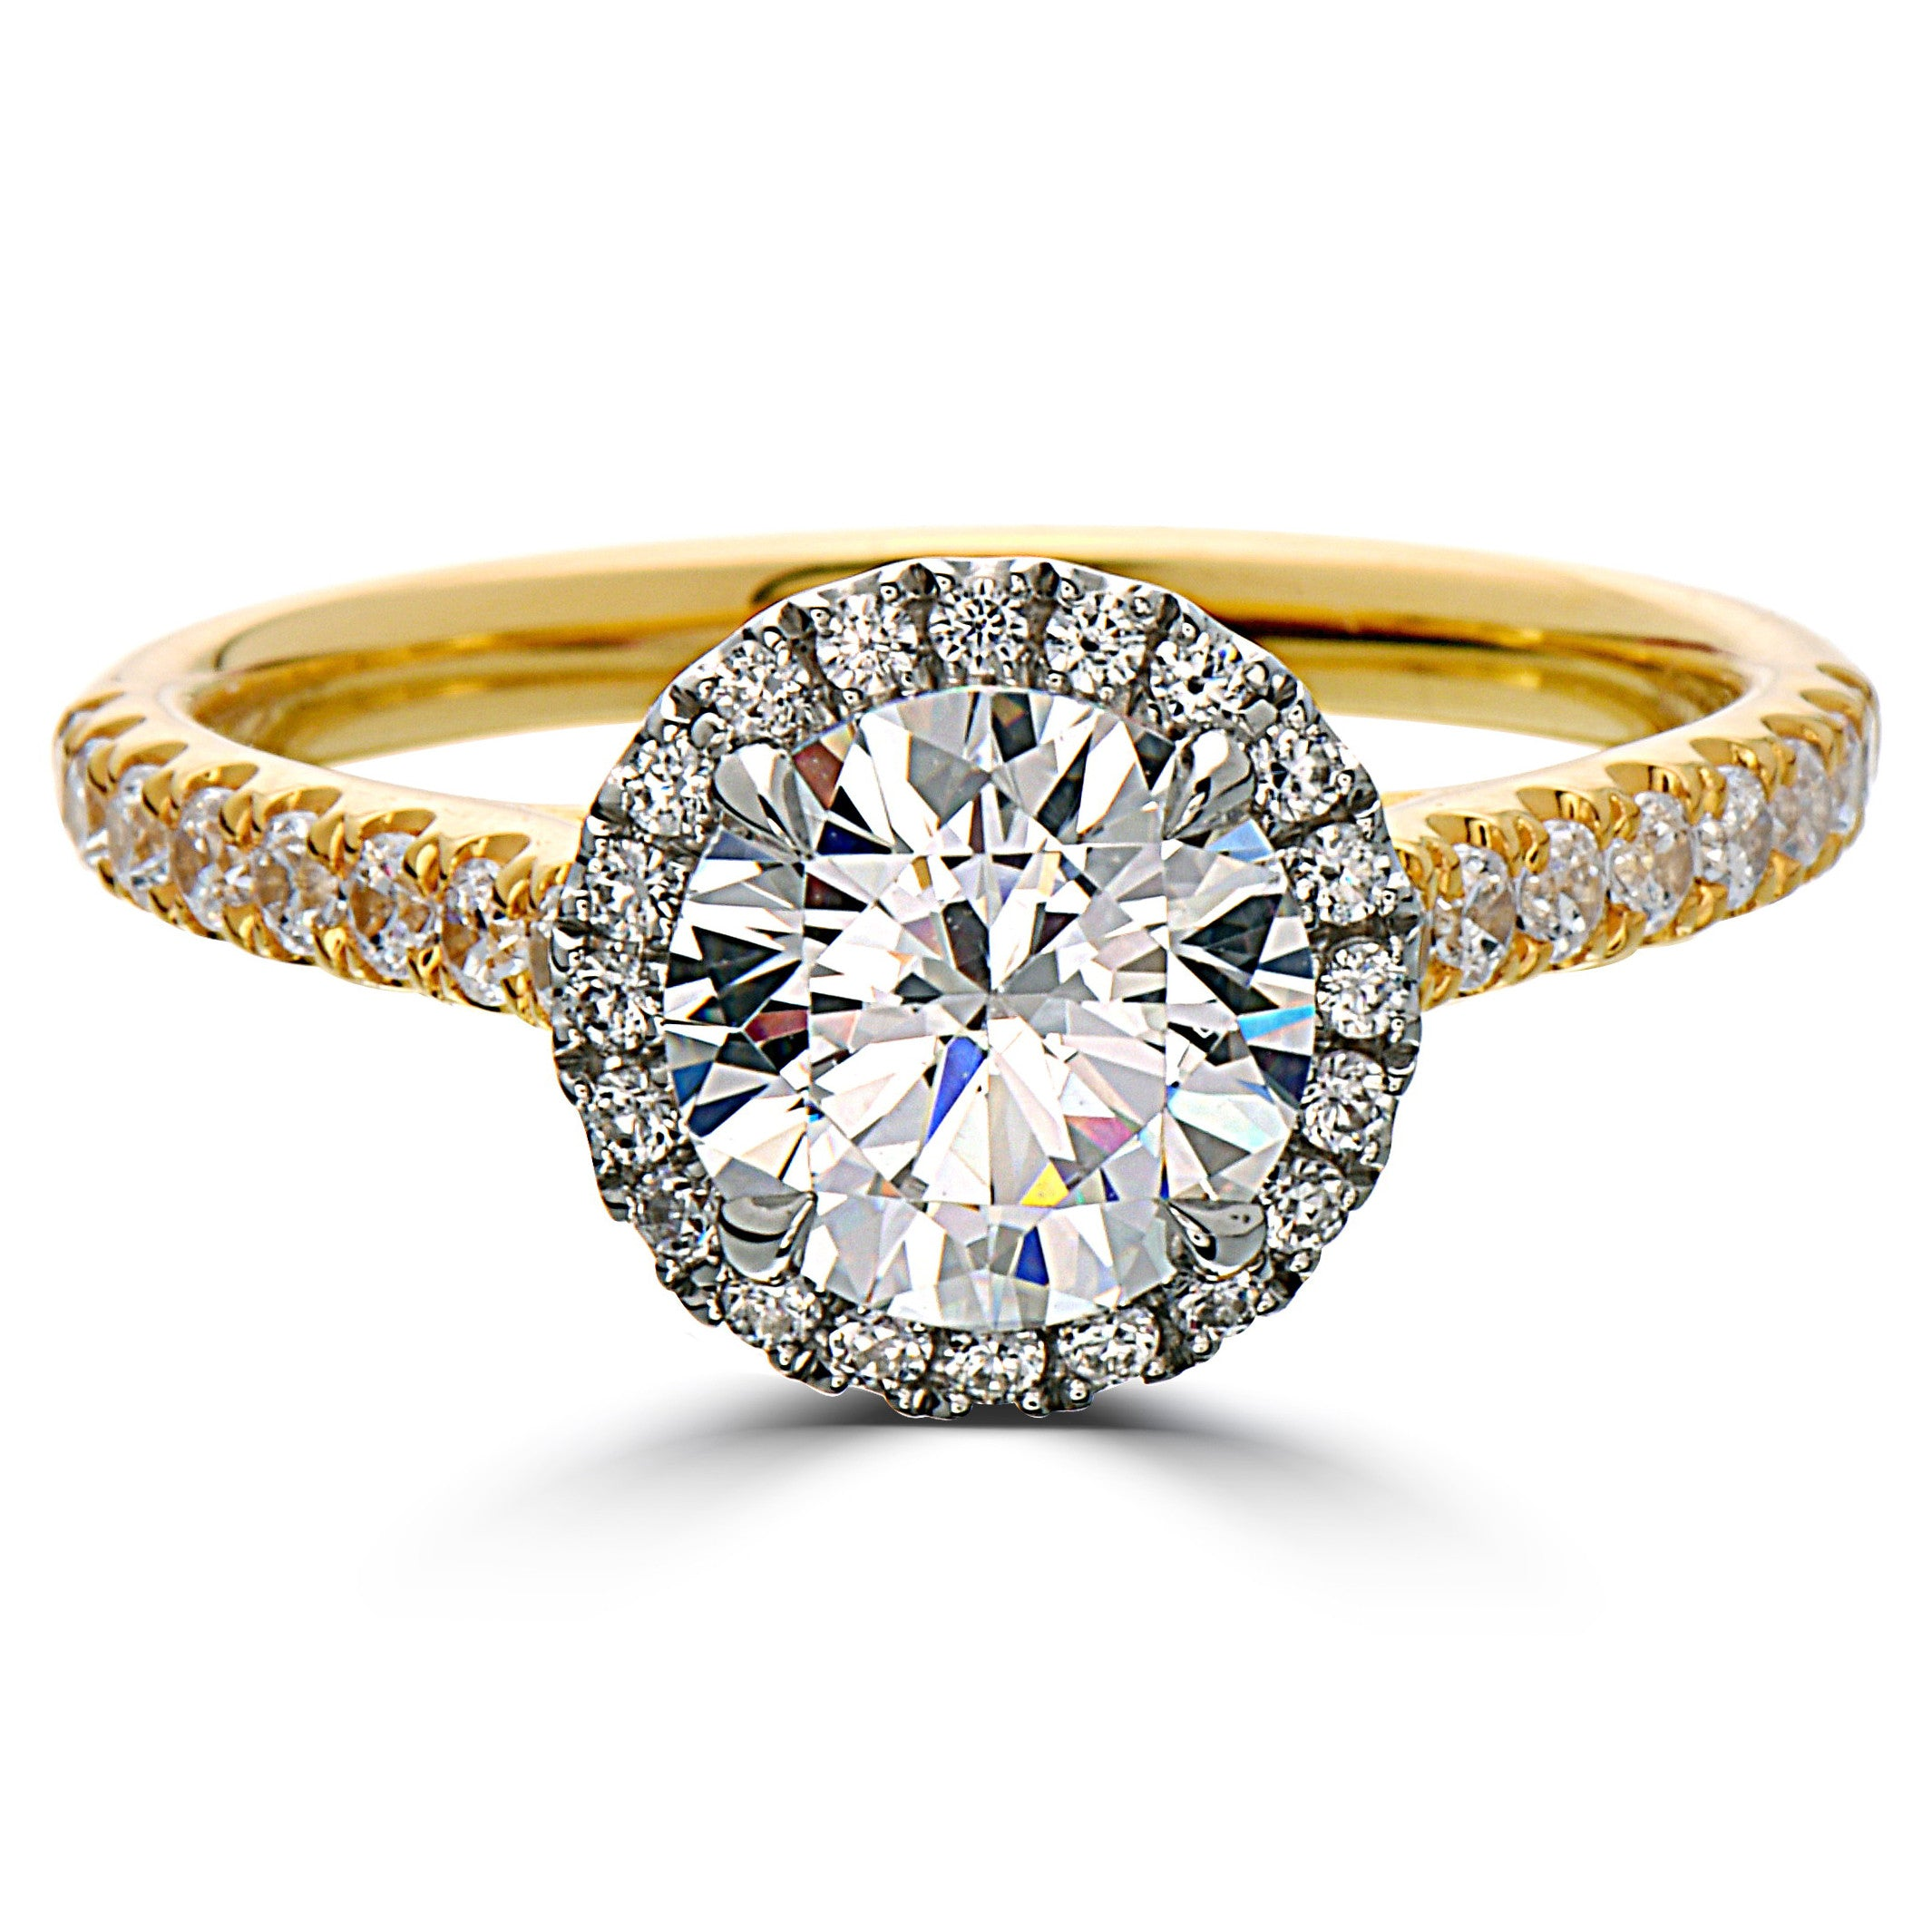 edited circular more than engagement are dsc expensive certain rings diamond others price shapes